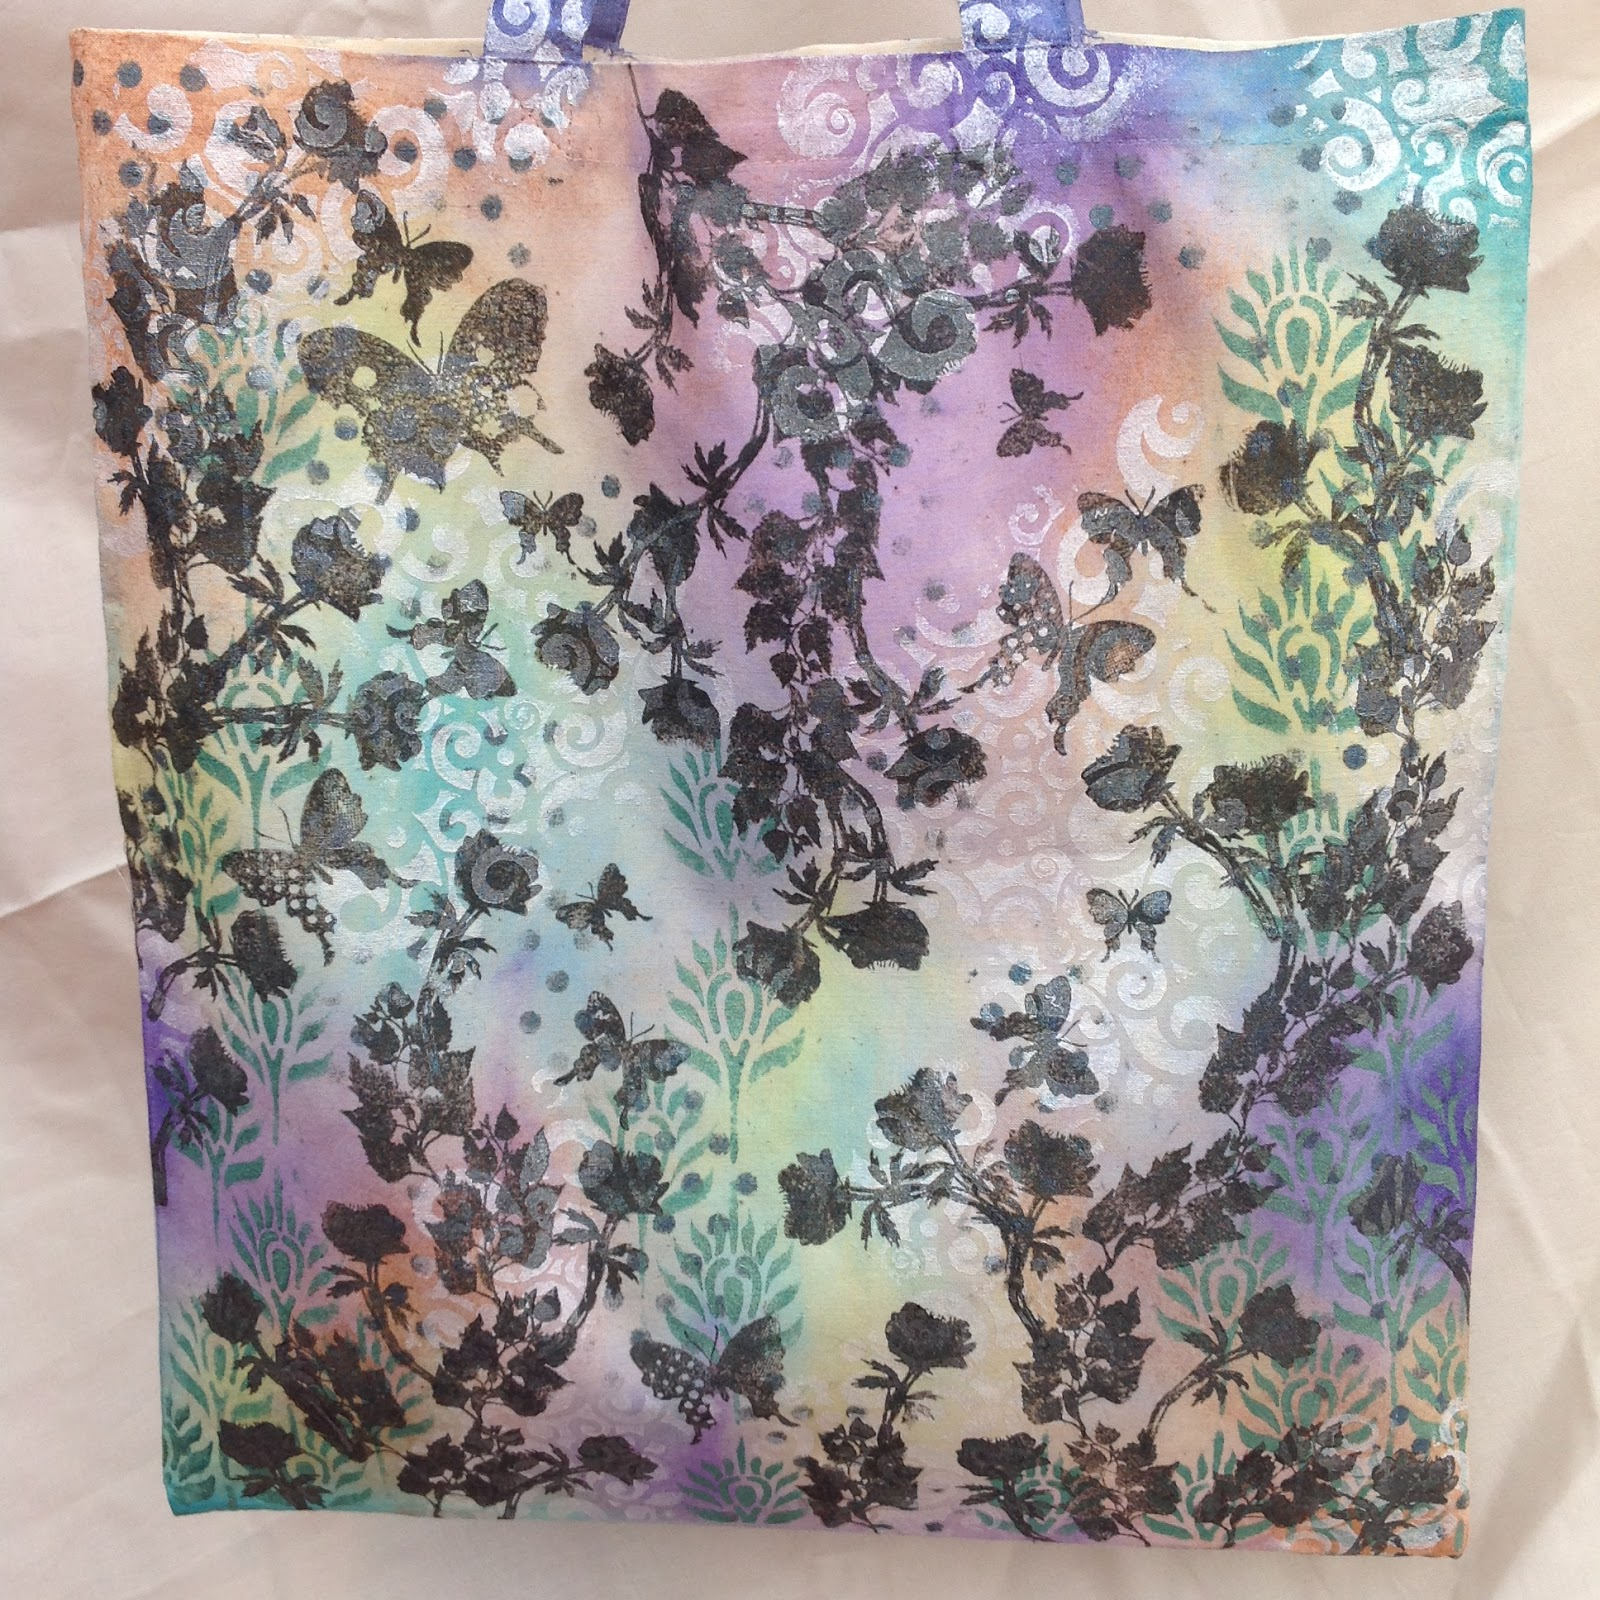 How to make fabric dye - These Final Two Pictures Show The Finished Bag Including The Butterflies From Both Sides I Didn T Try To Make The Sides Match It S More Fun To Have